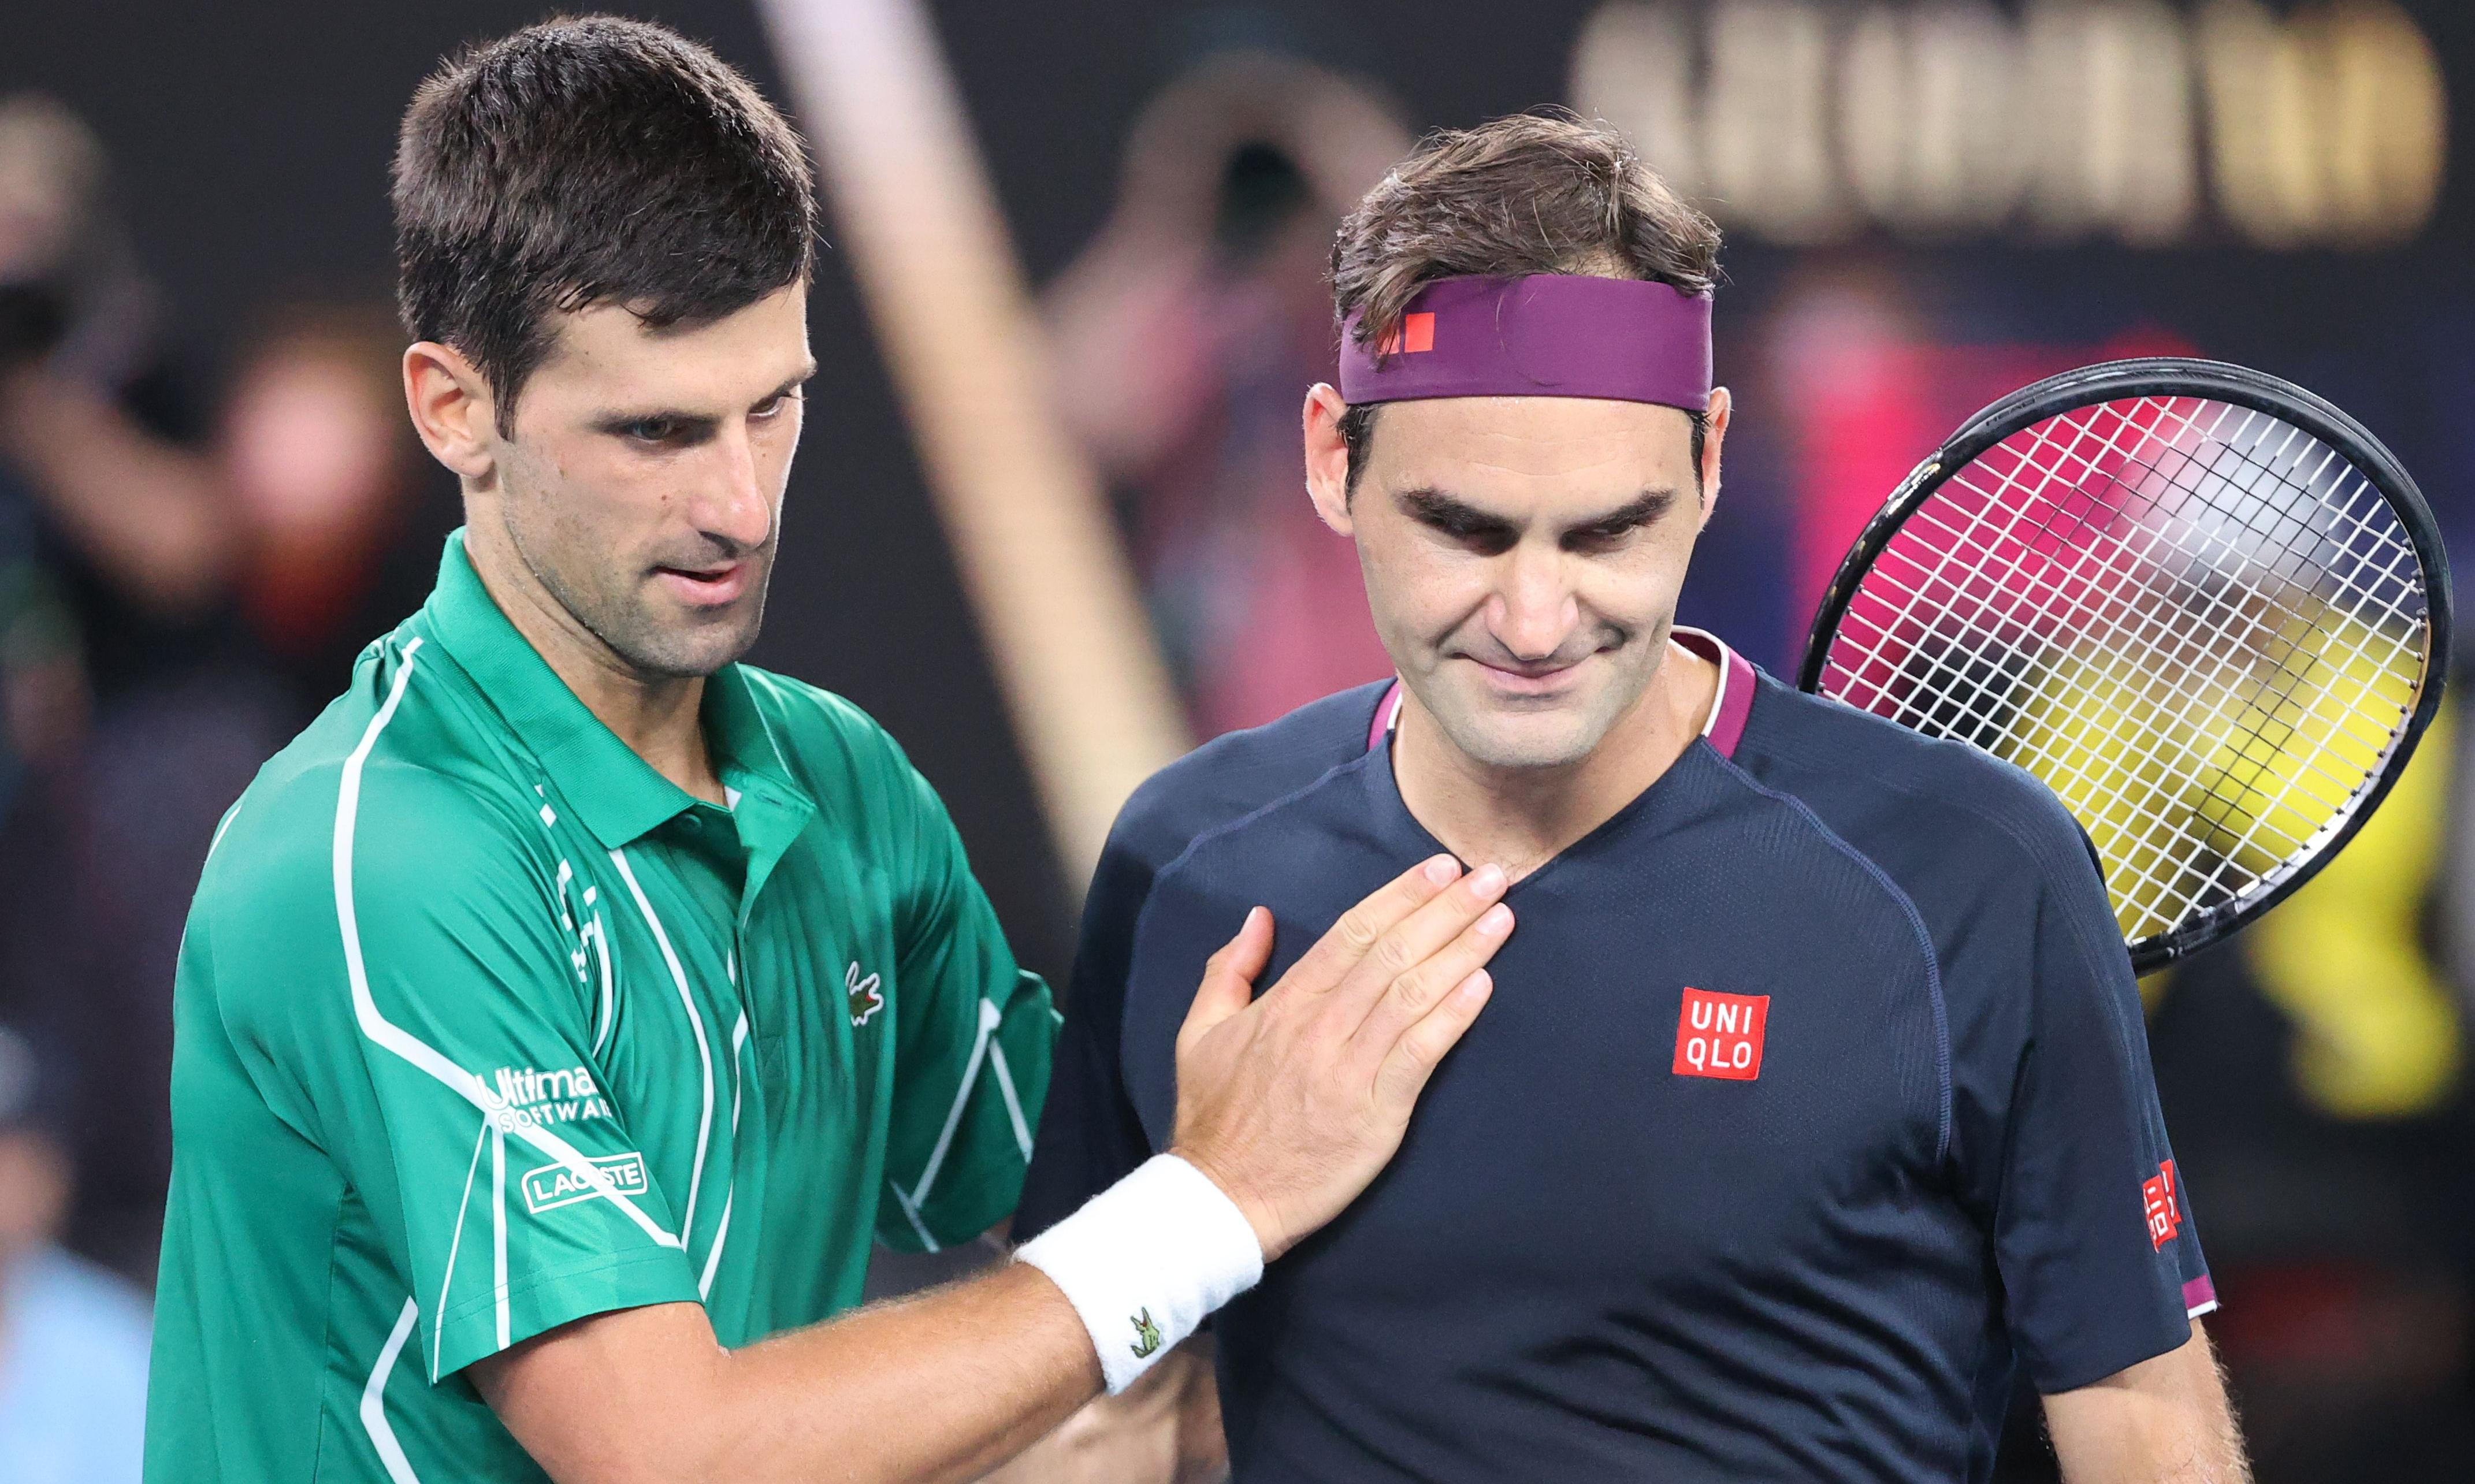 Roger Federer bows to injury and Djokovic but winning belief remains